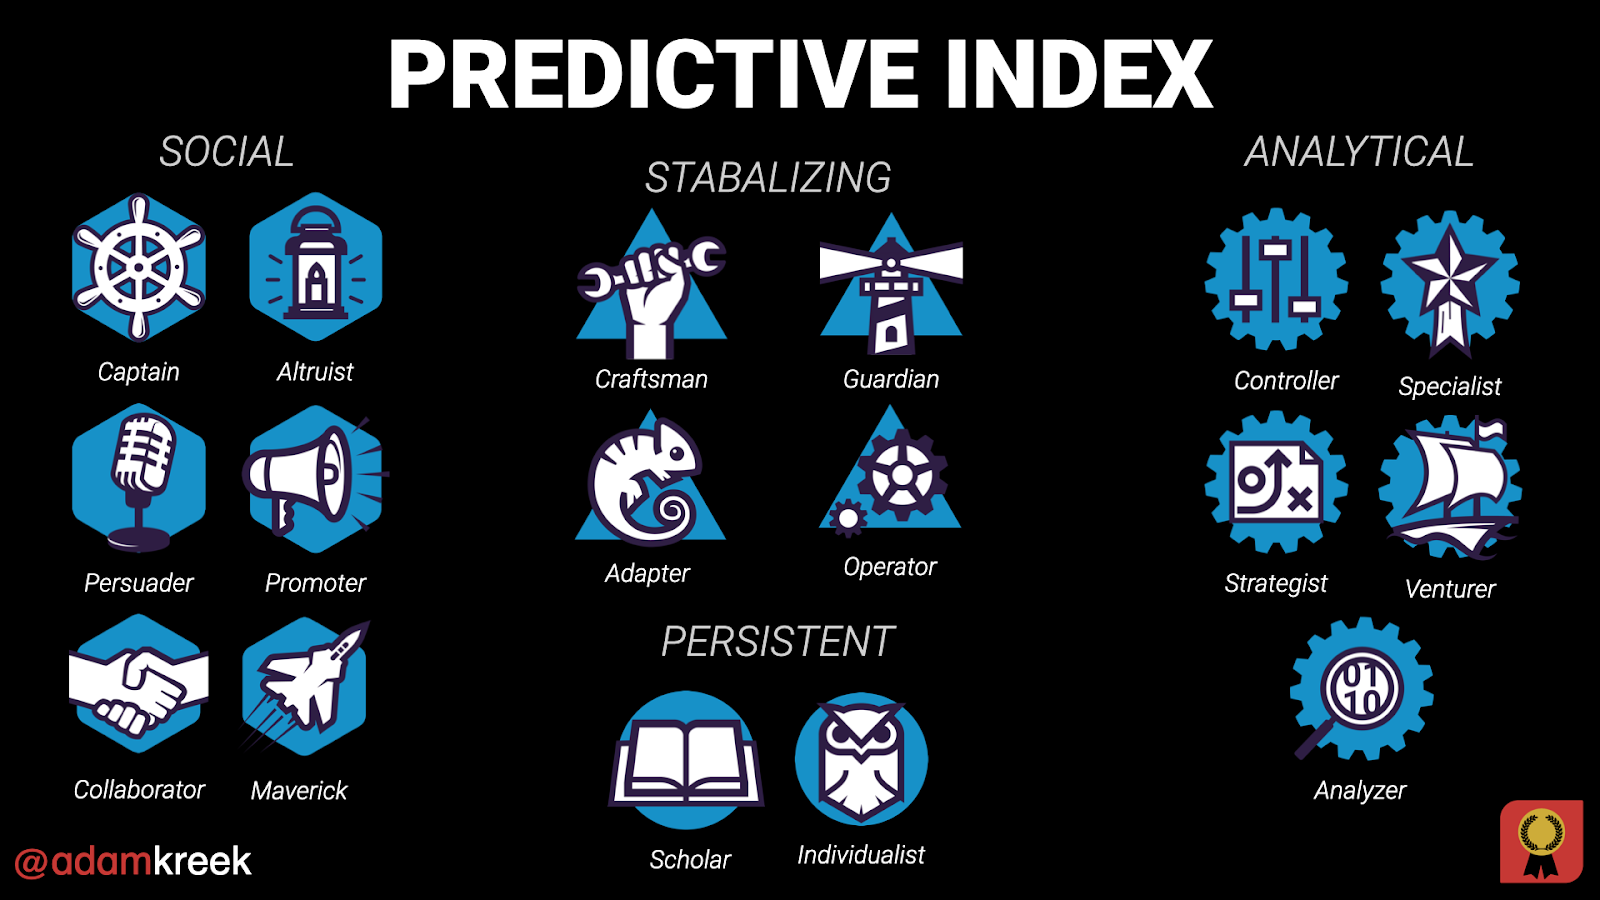 Predictive Index dichotomy